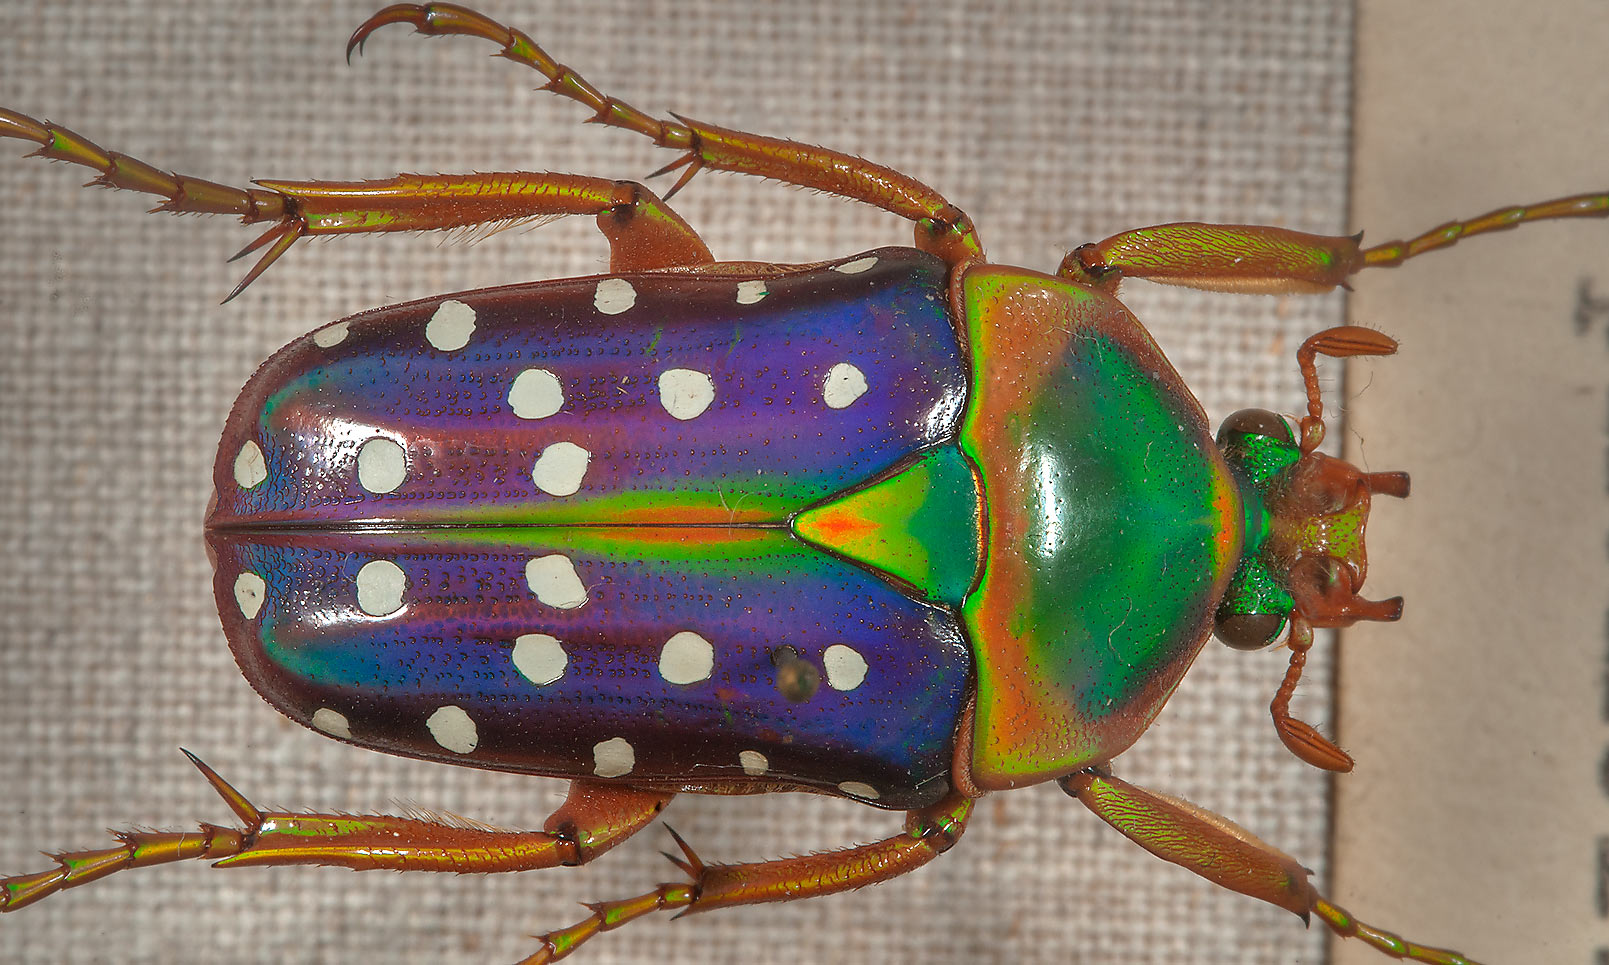 Blue Spotted Flower Beetle (Stephanorrhina...Museum. St.Petersburg, Russia